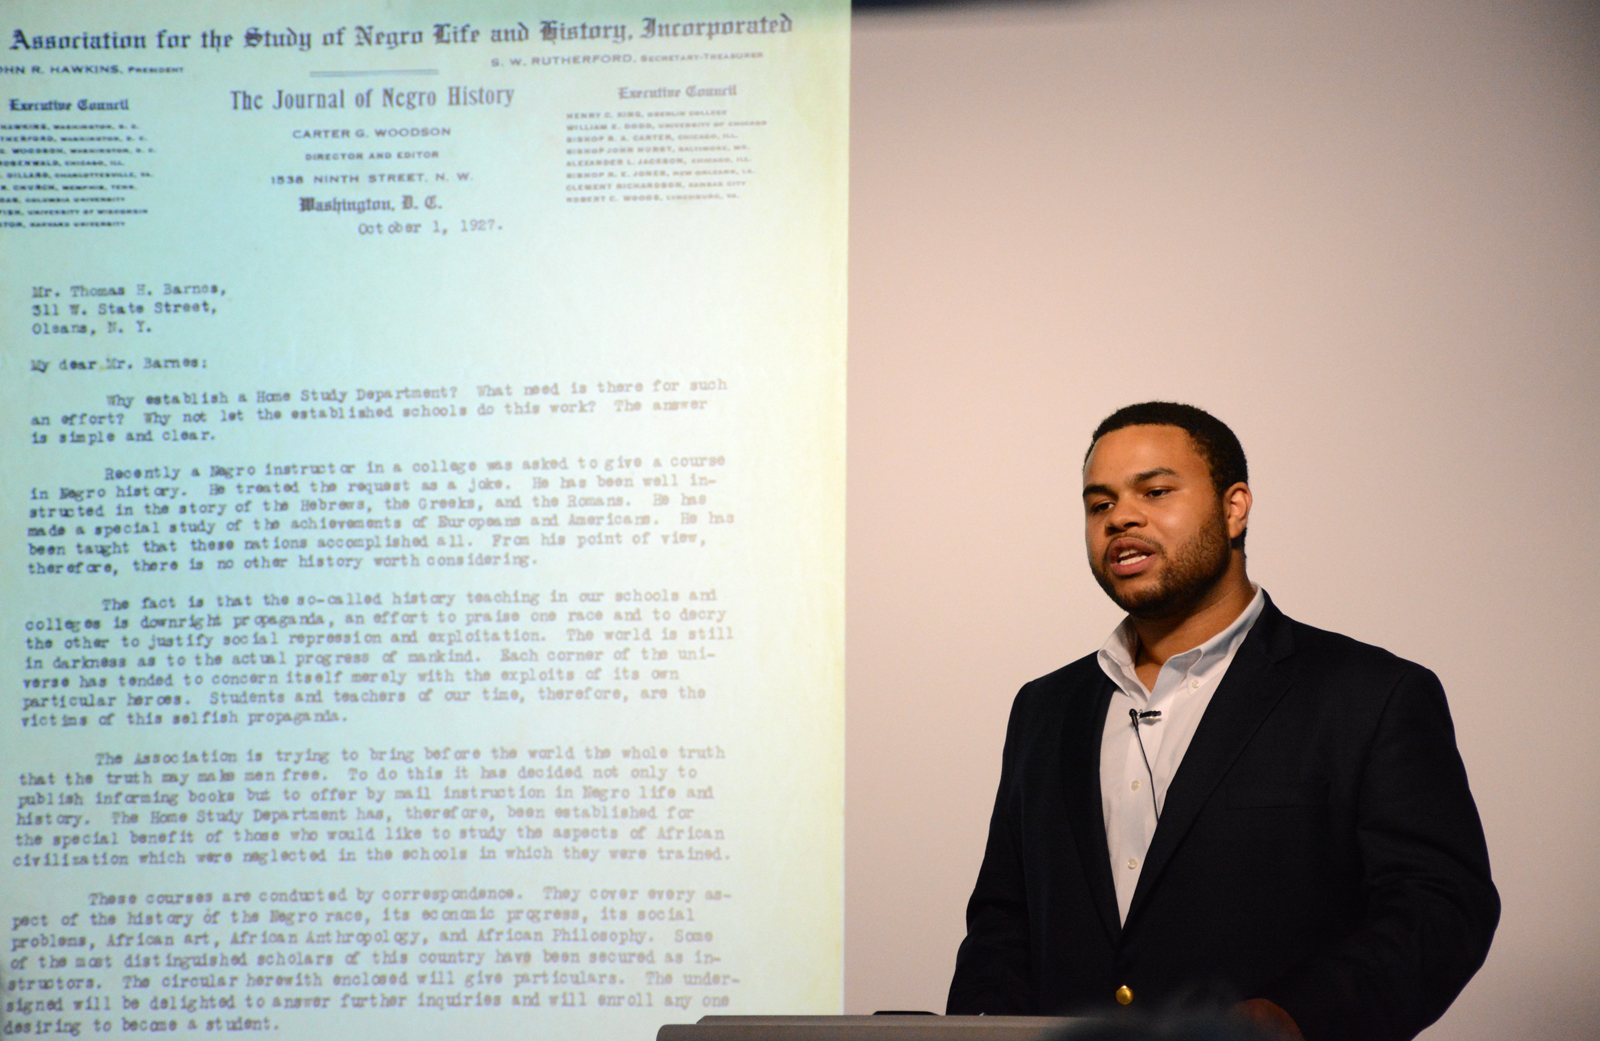 MALS Student Curates Pop-up Exhibit on Letters from African-American Leaders